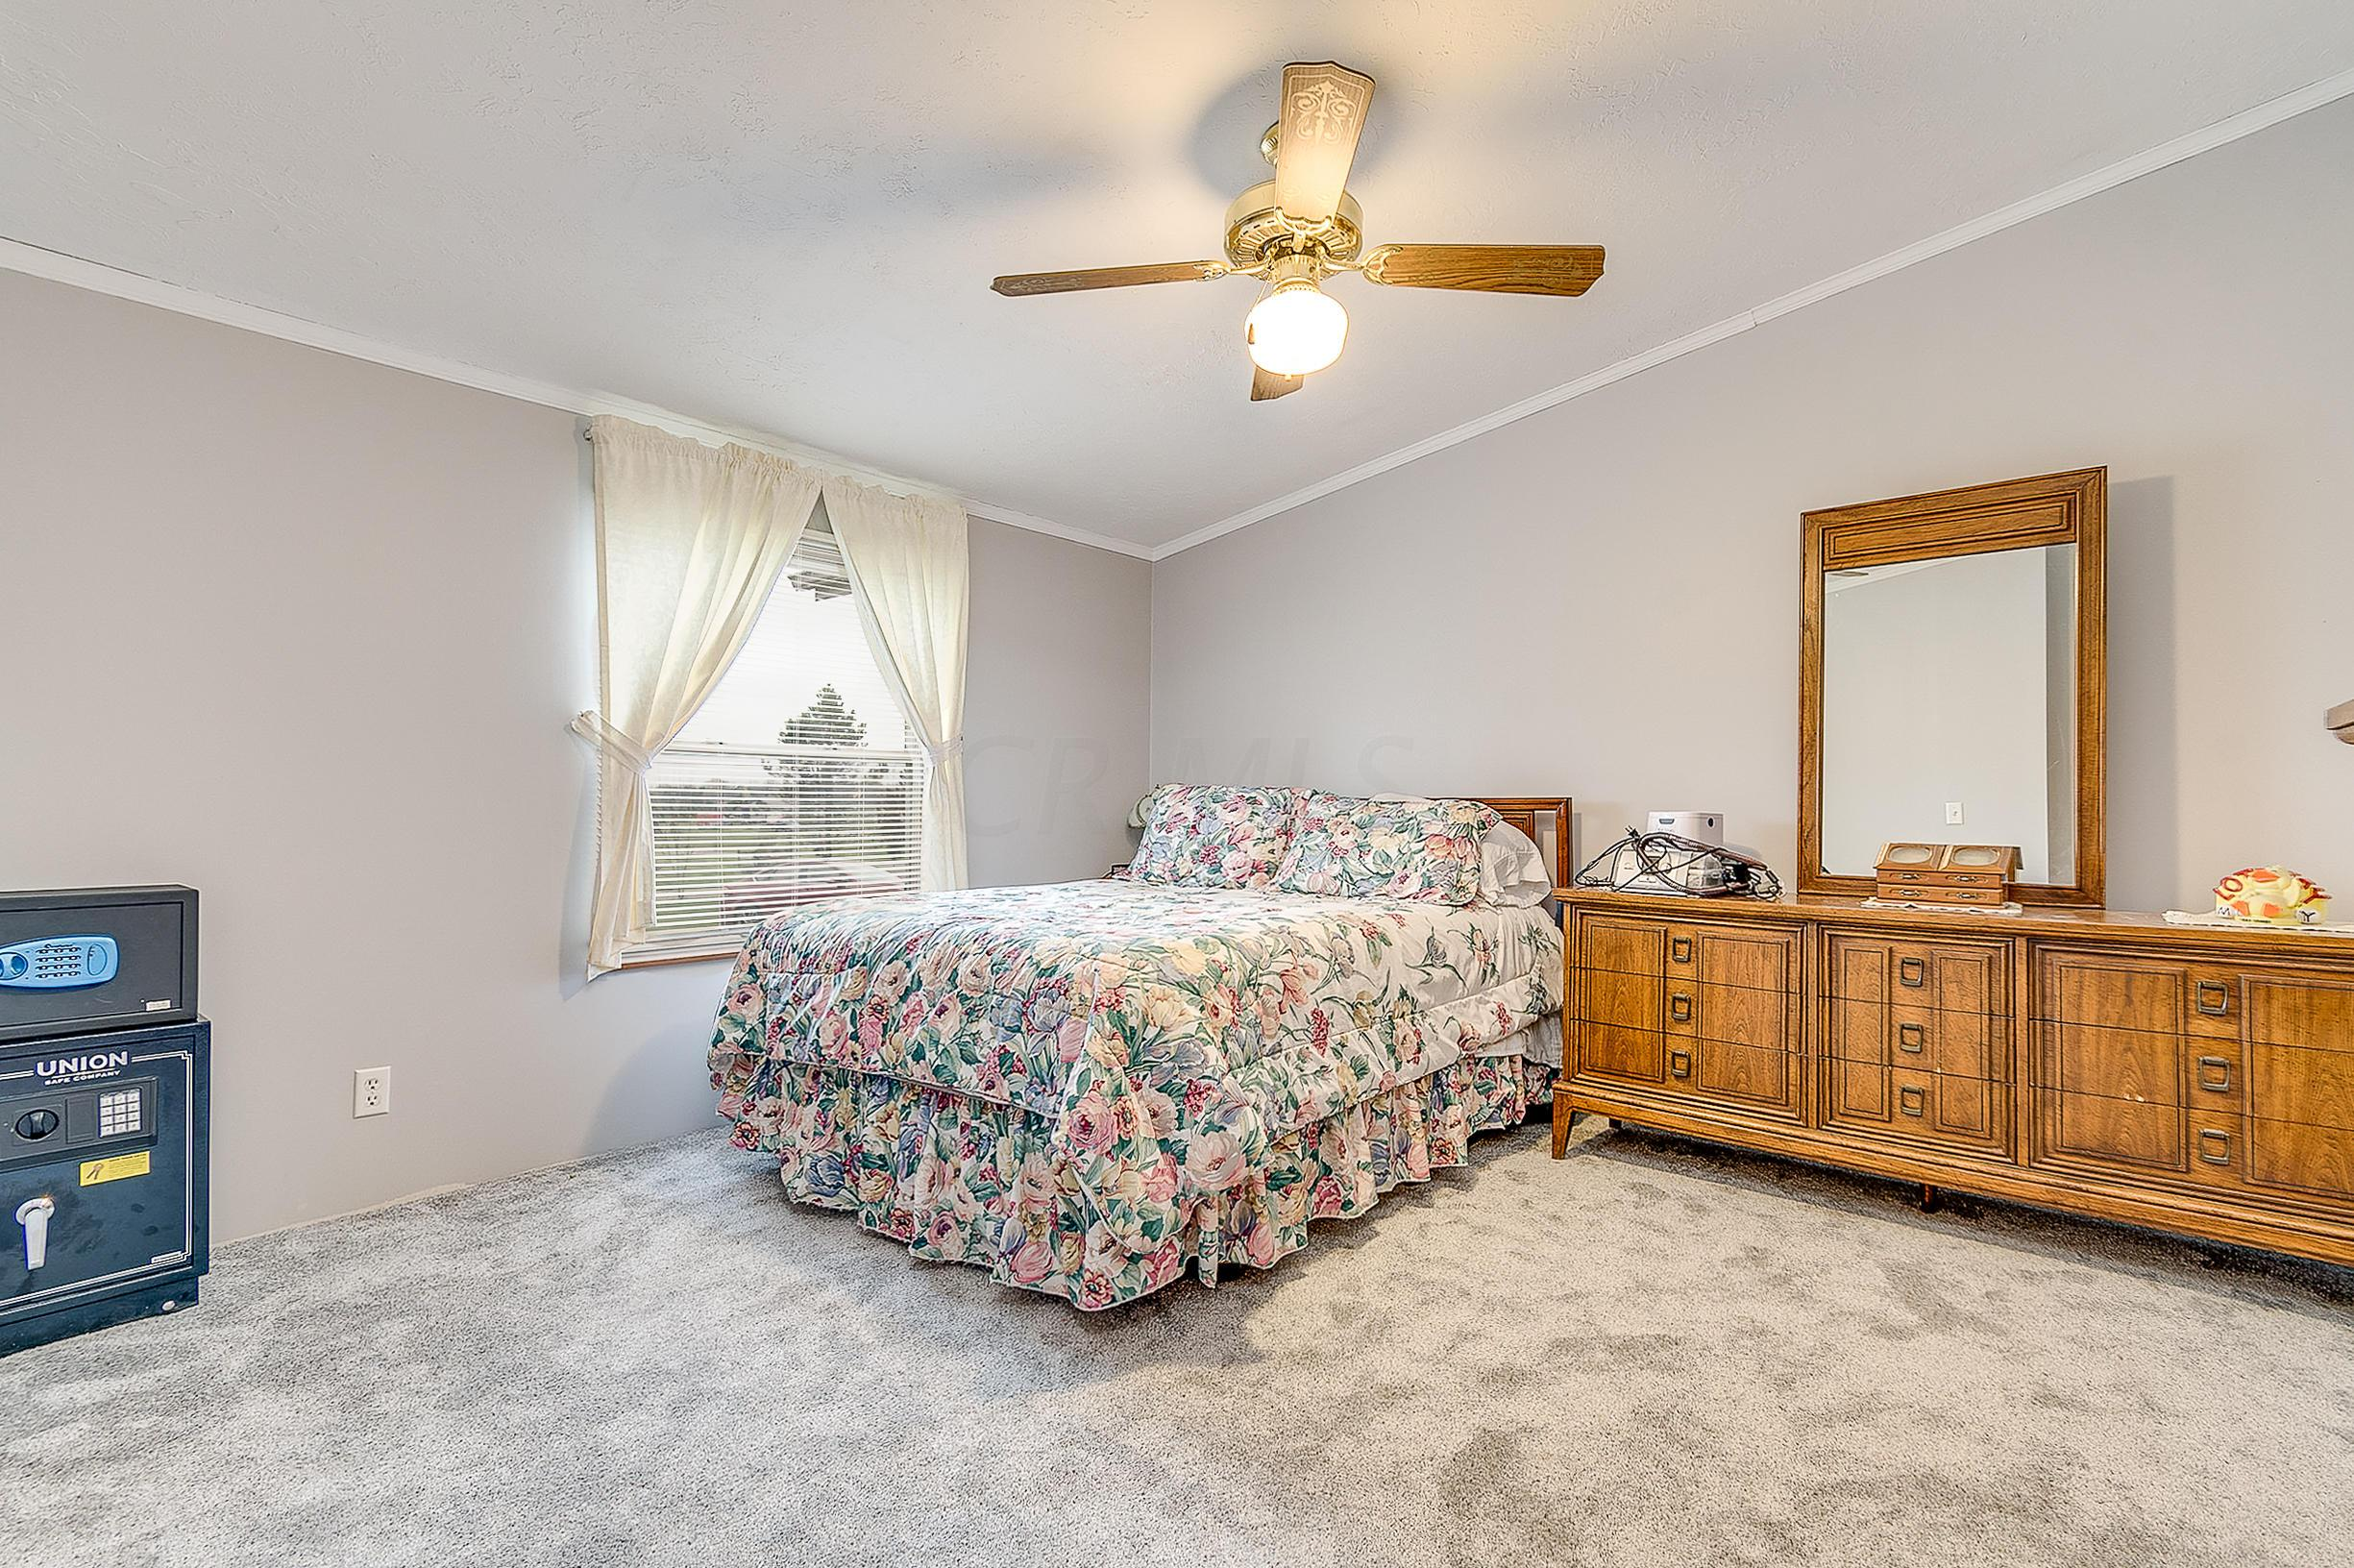 6648 BENNER ROAD, JOHNSTOWN, OH 43031 | The Dixon Team